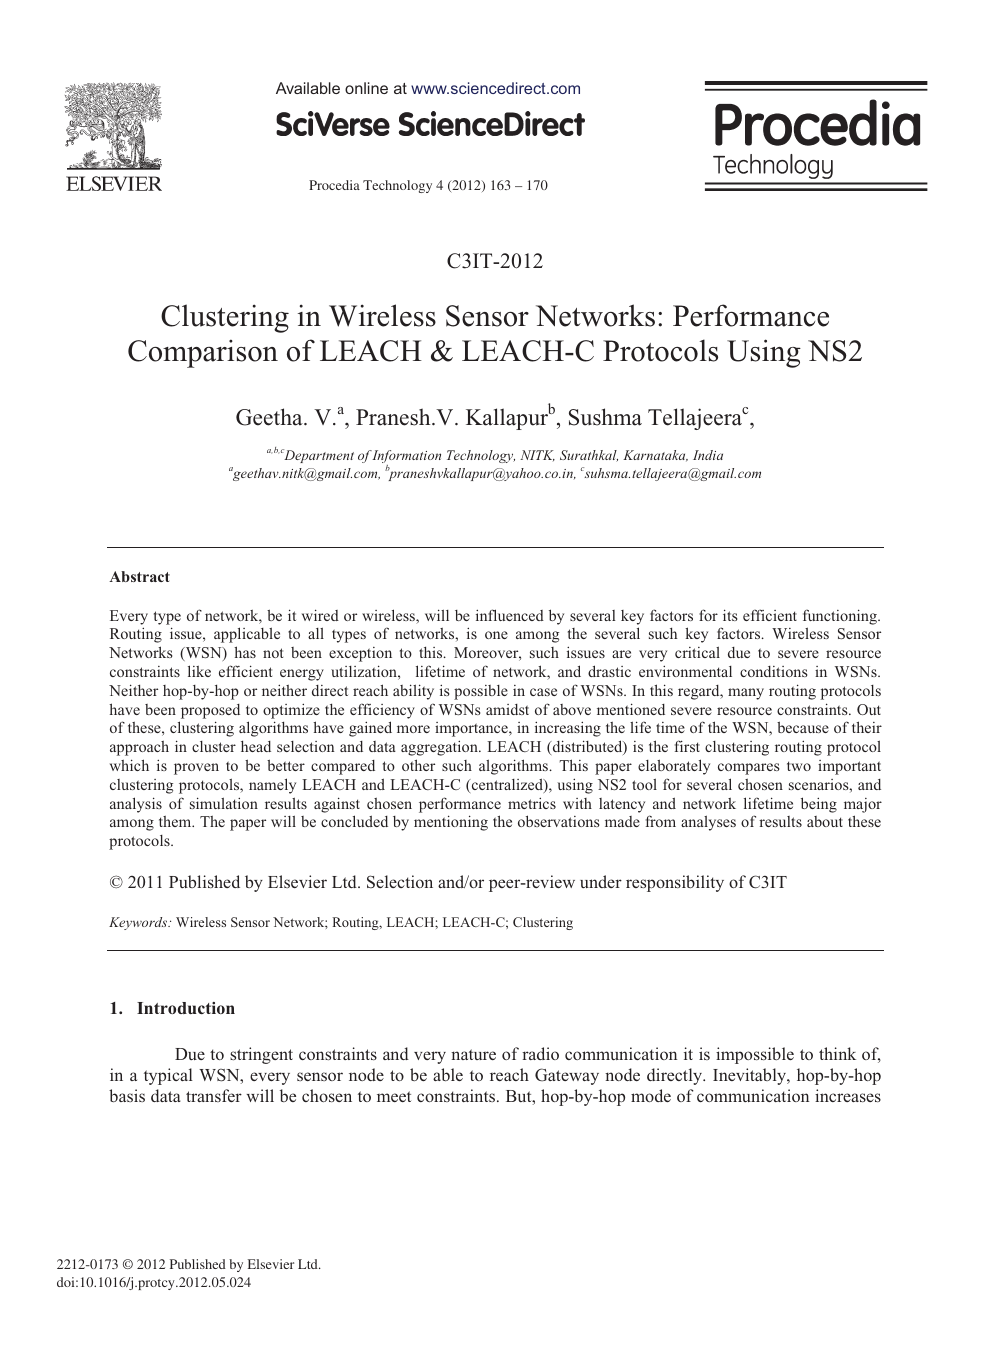 Clustering in Wireless Sensor Networks: Performance